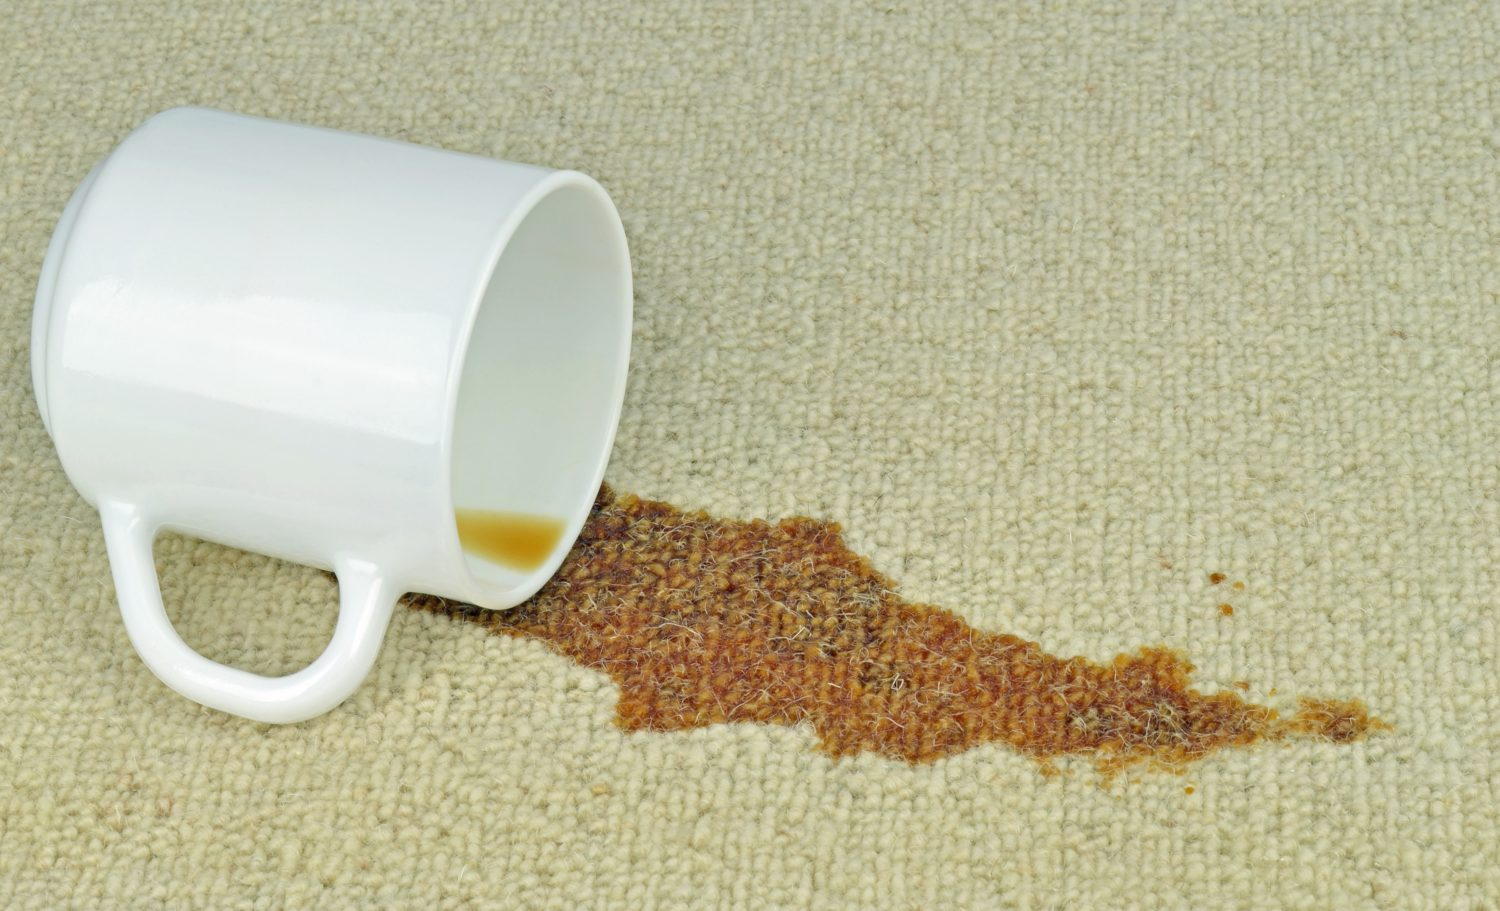 6 Easy Ways To Remove Coffee Stains Because Coffee Spills Happen To Everyone Simplemost